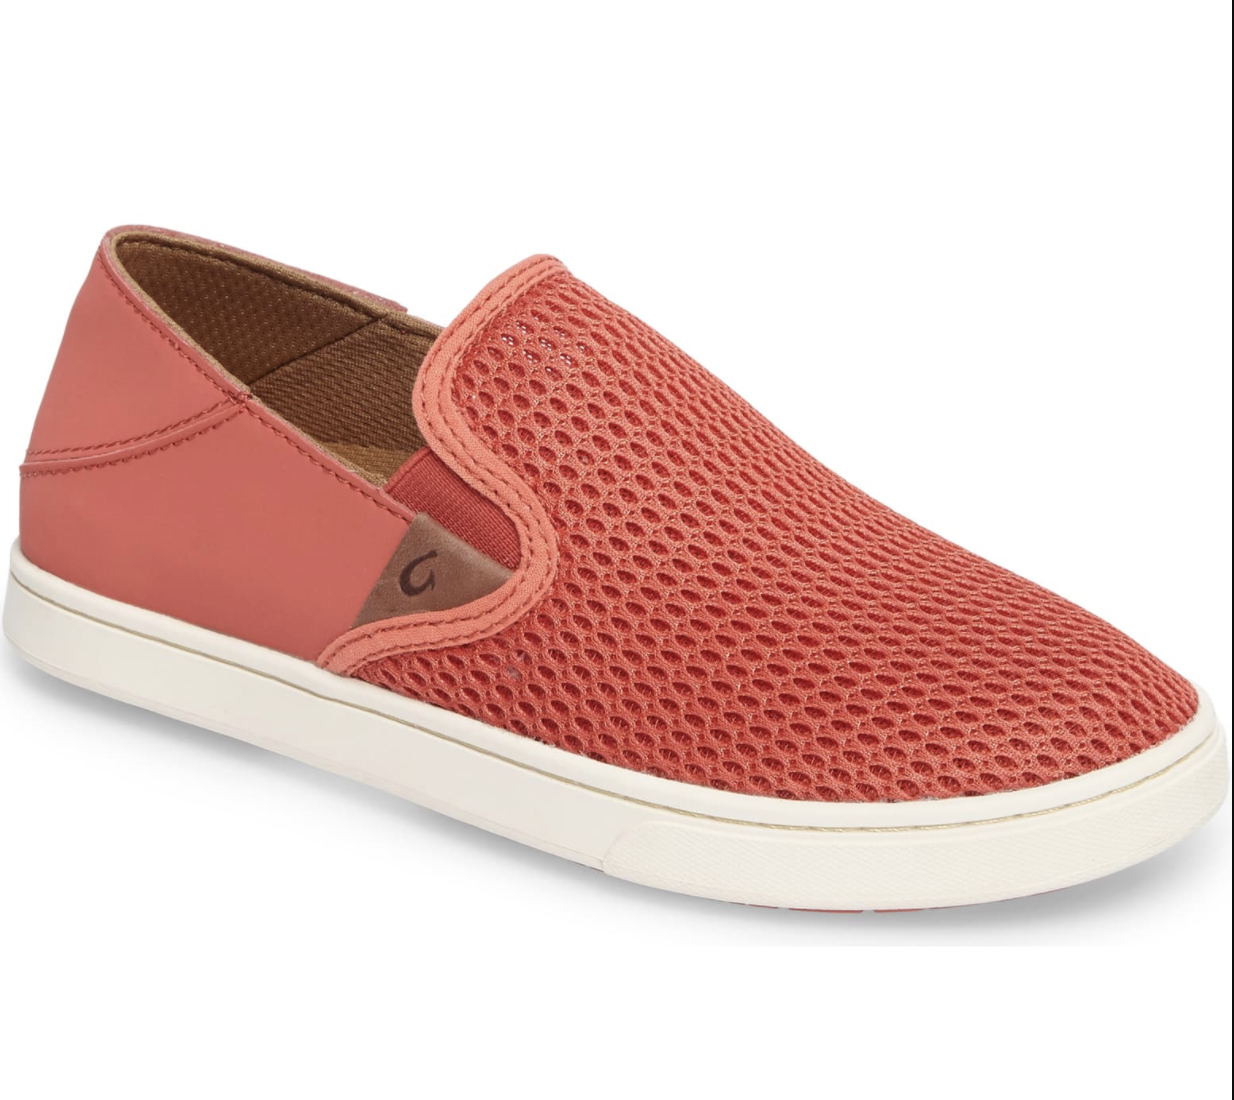 The slide-ones with a knit top and drop-in heel in orange with white sole